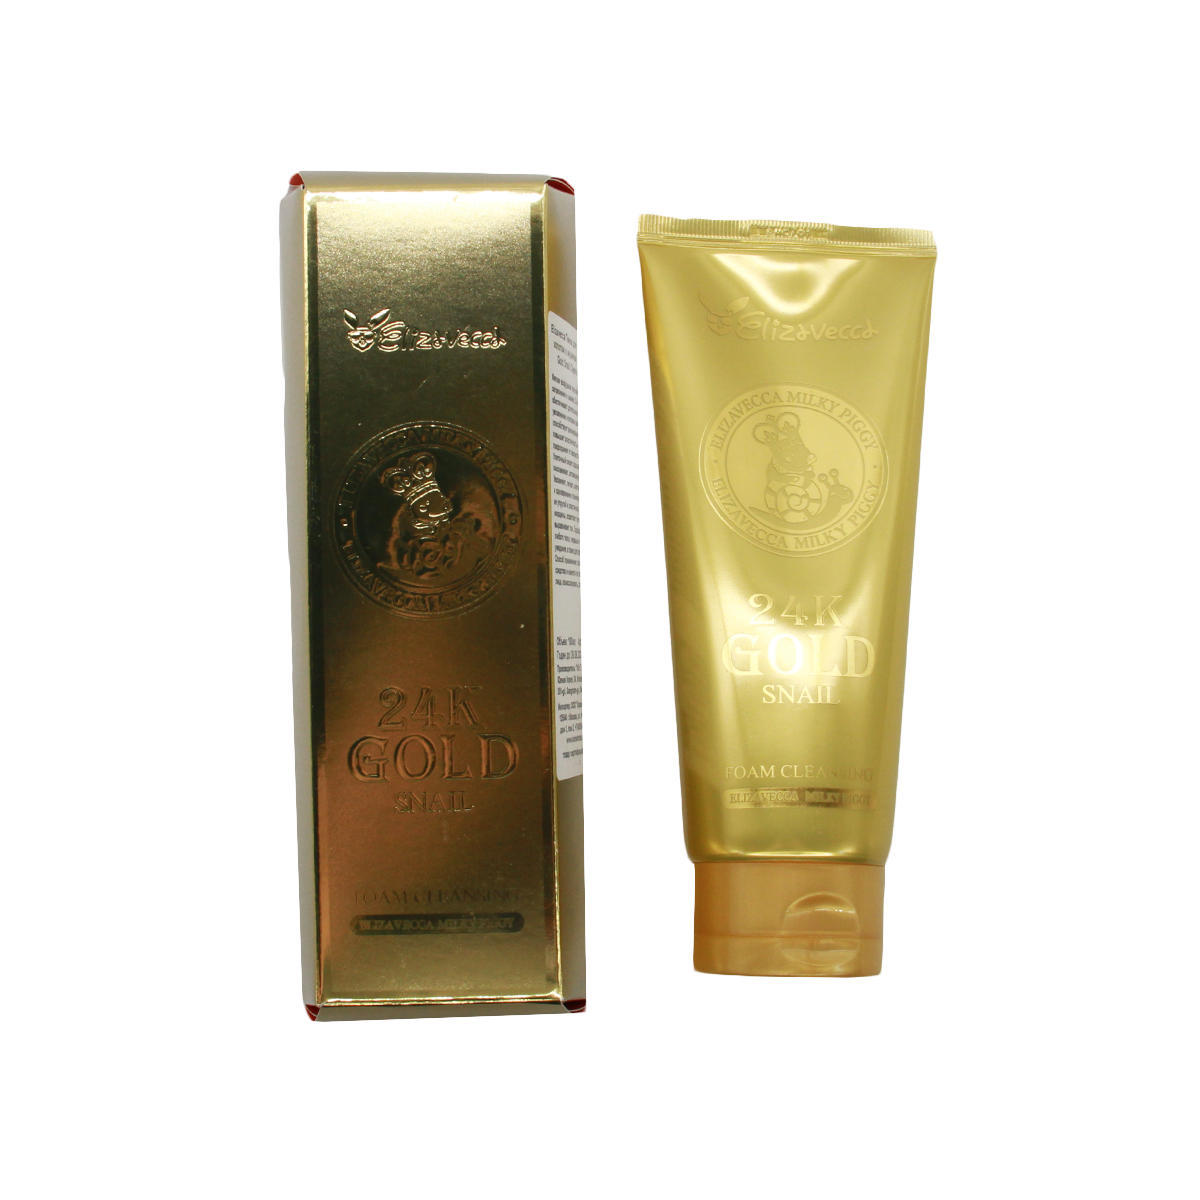 Очищение Очищающая пенка Elizavecca 24K Gold Snail Cleansing Foam, 180 мл import_files_6e_6eaa59805ac911e980fb3408042974b1_6eaa59815ac911e980fb3408042974b1.jpg